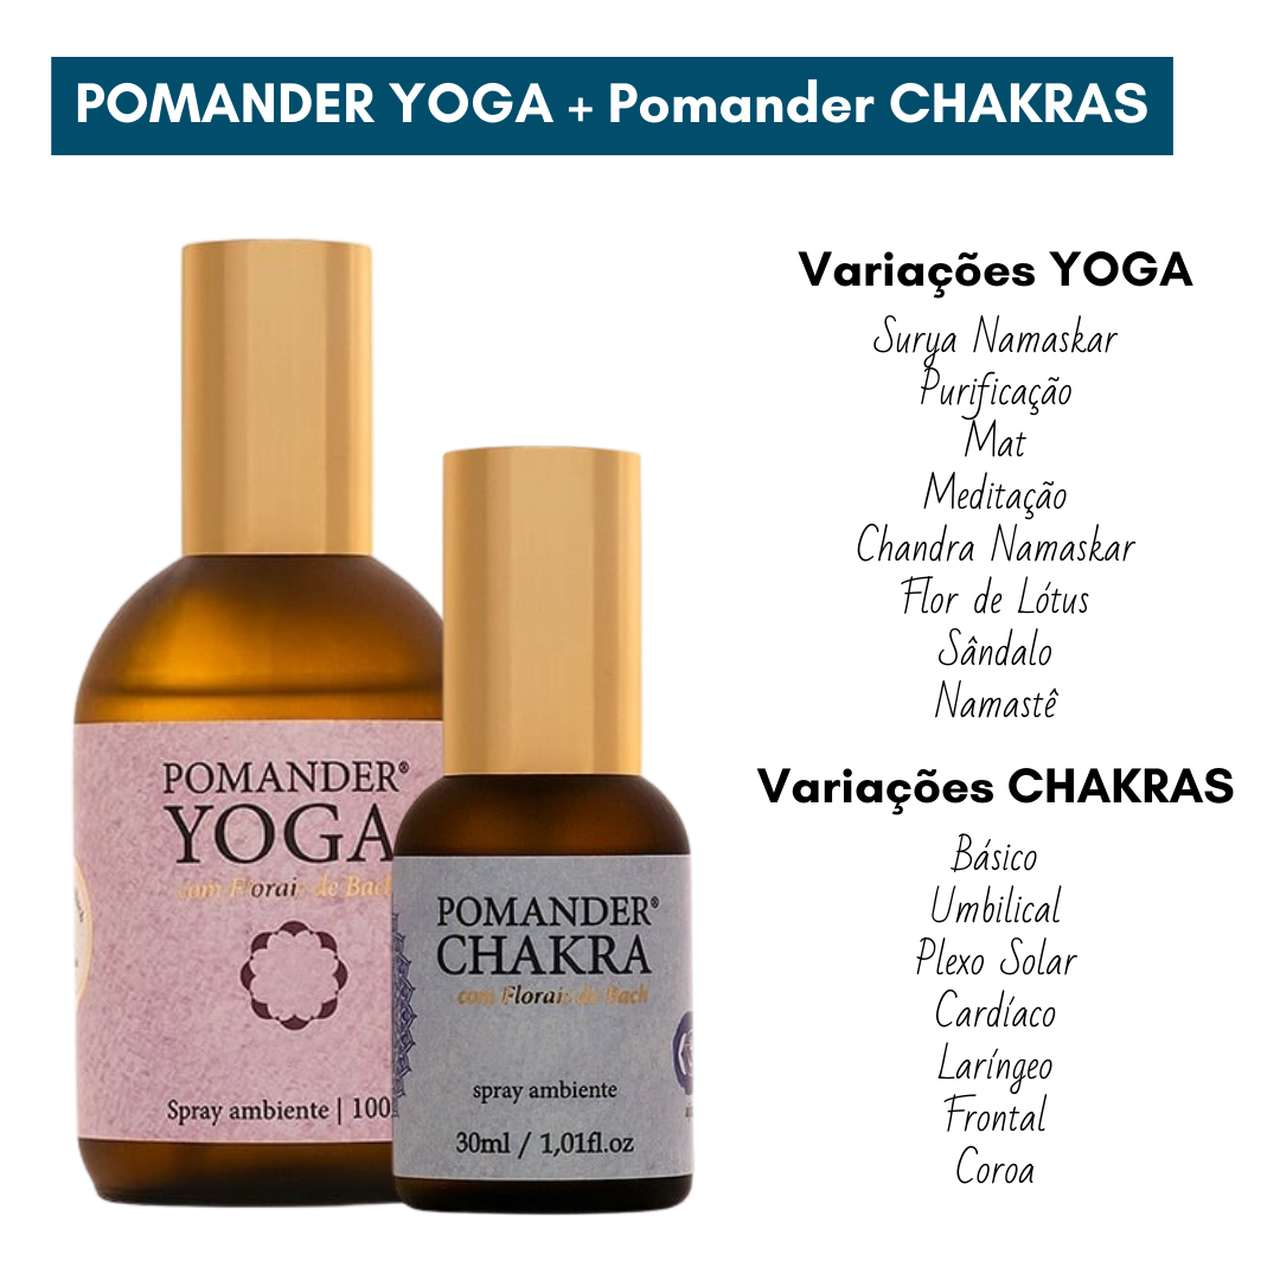 Kit Pomander Yoga 100ml  e Pomander Chakras 30ml